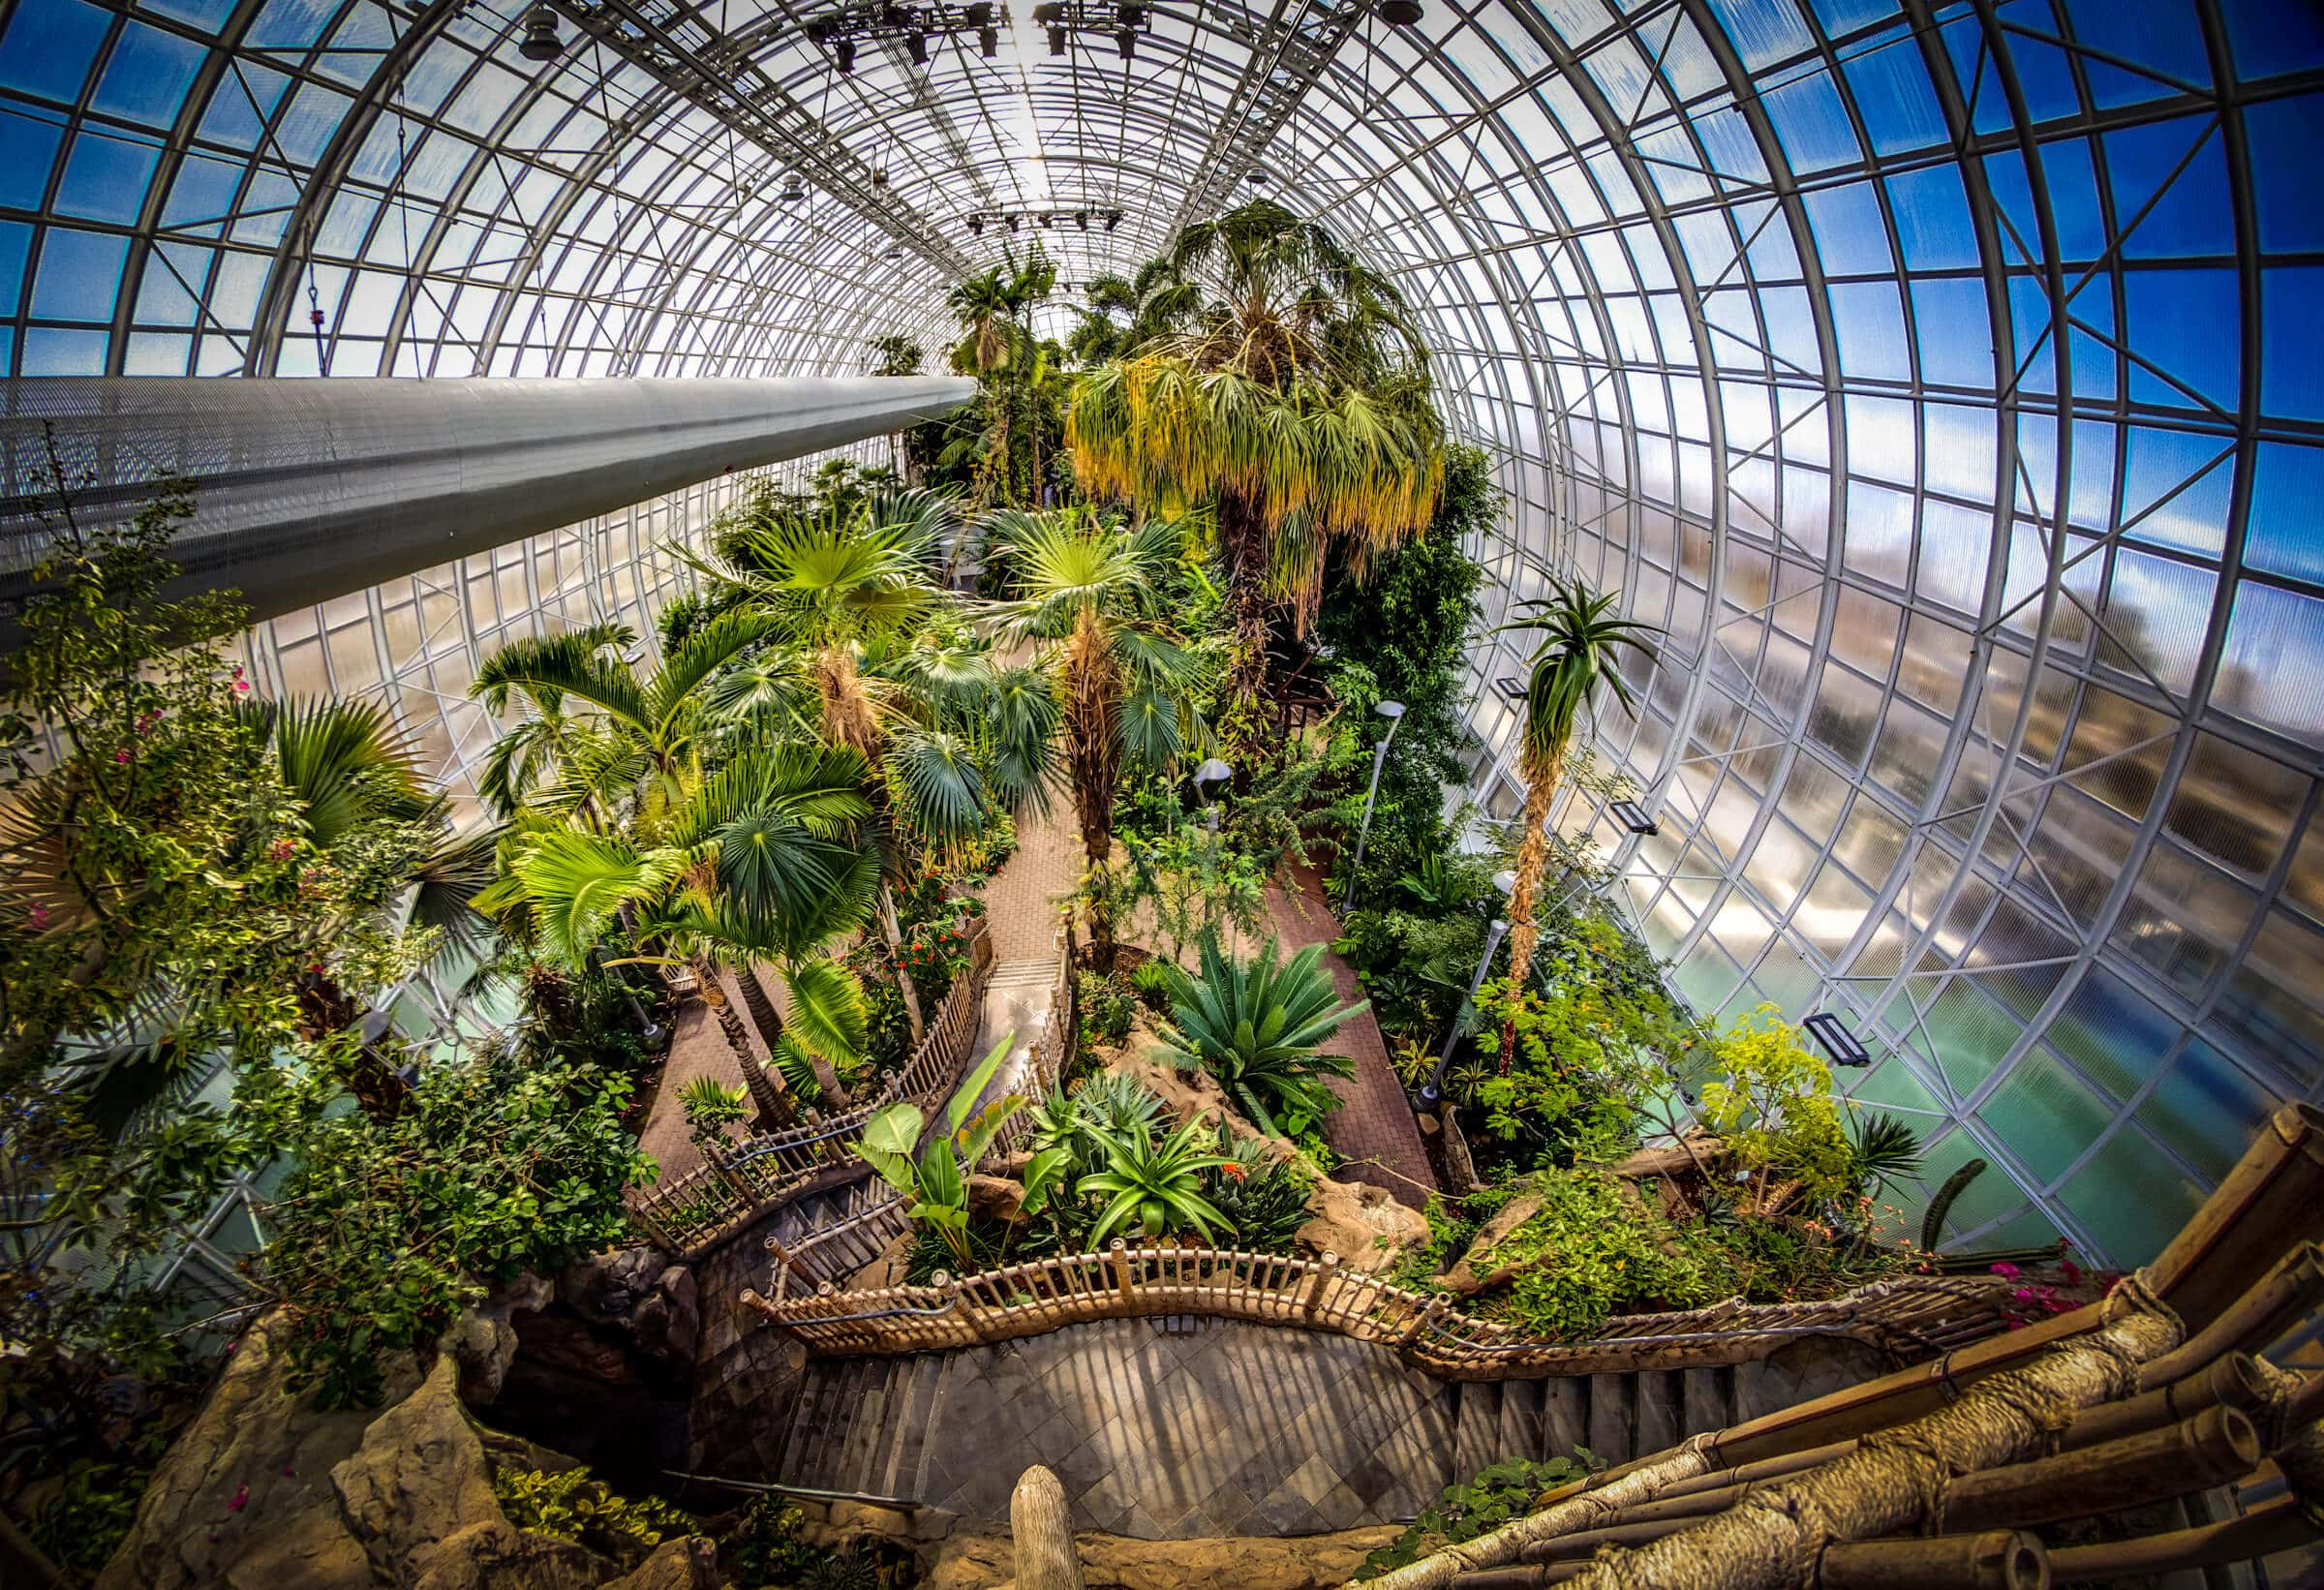 Interior of Myriad Gardens in Oklahoma City